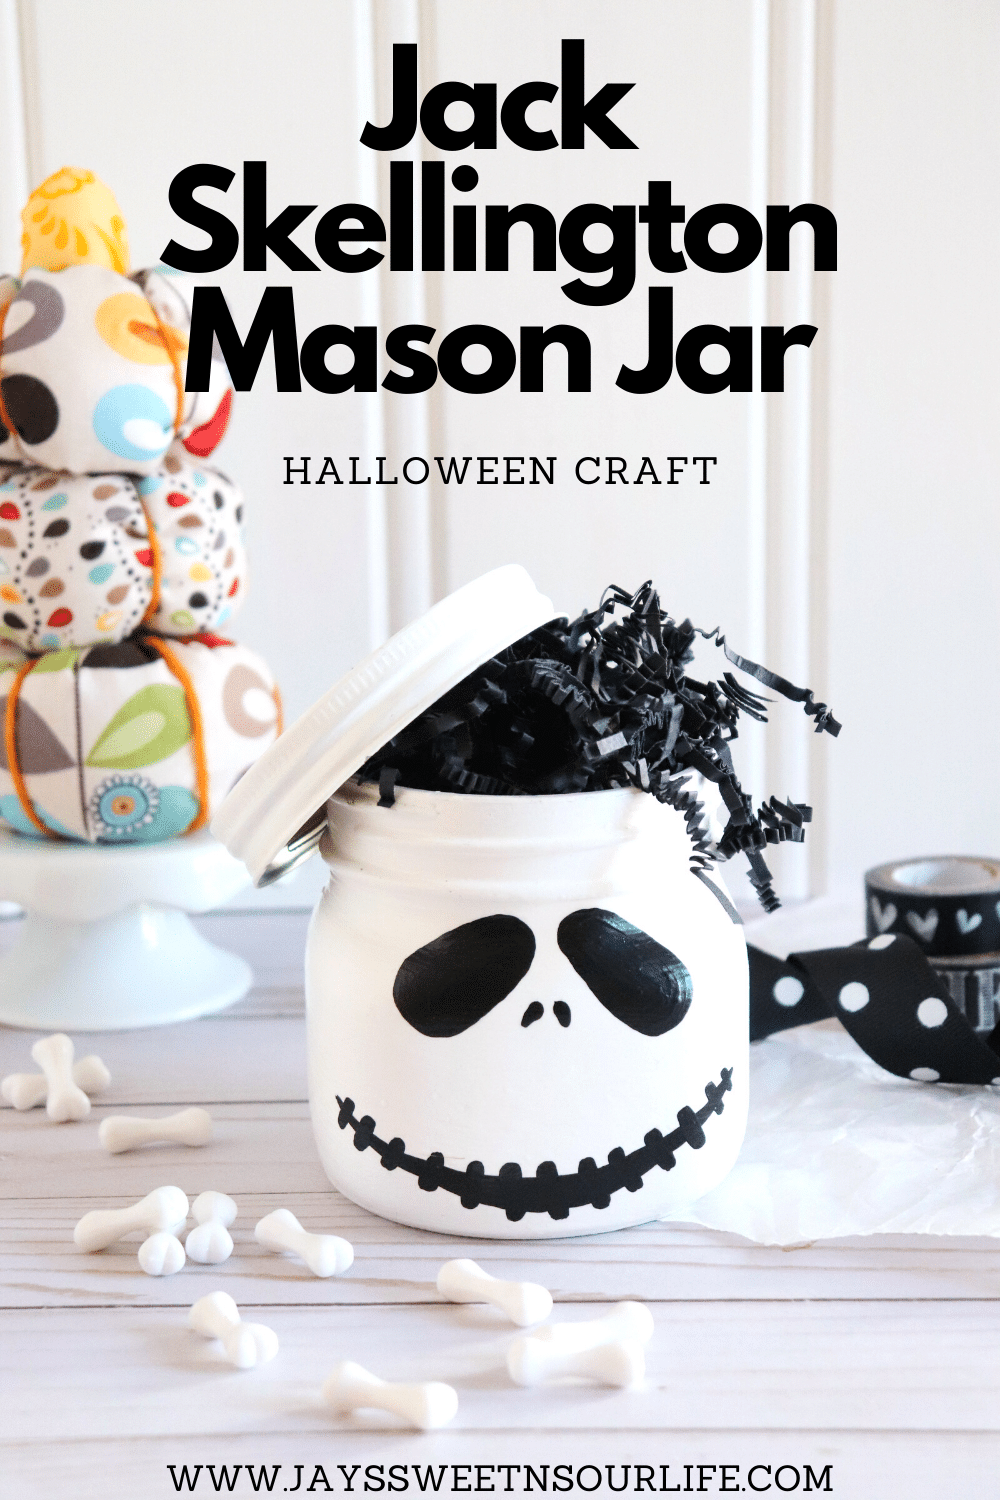 Jack Skellington Mason Jar Craft. This Jack Skellington Mason Jar Halloween Craft is the perfect way to creep your way into the Halloween season. Fill it with your favorite candies and treats, it's the perfect Halloween Craft that you can keep or gift.